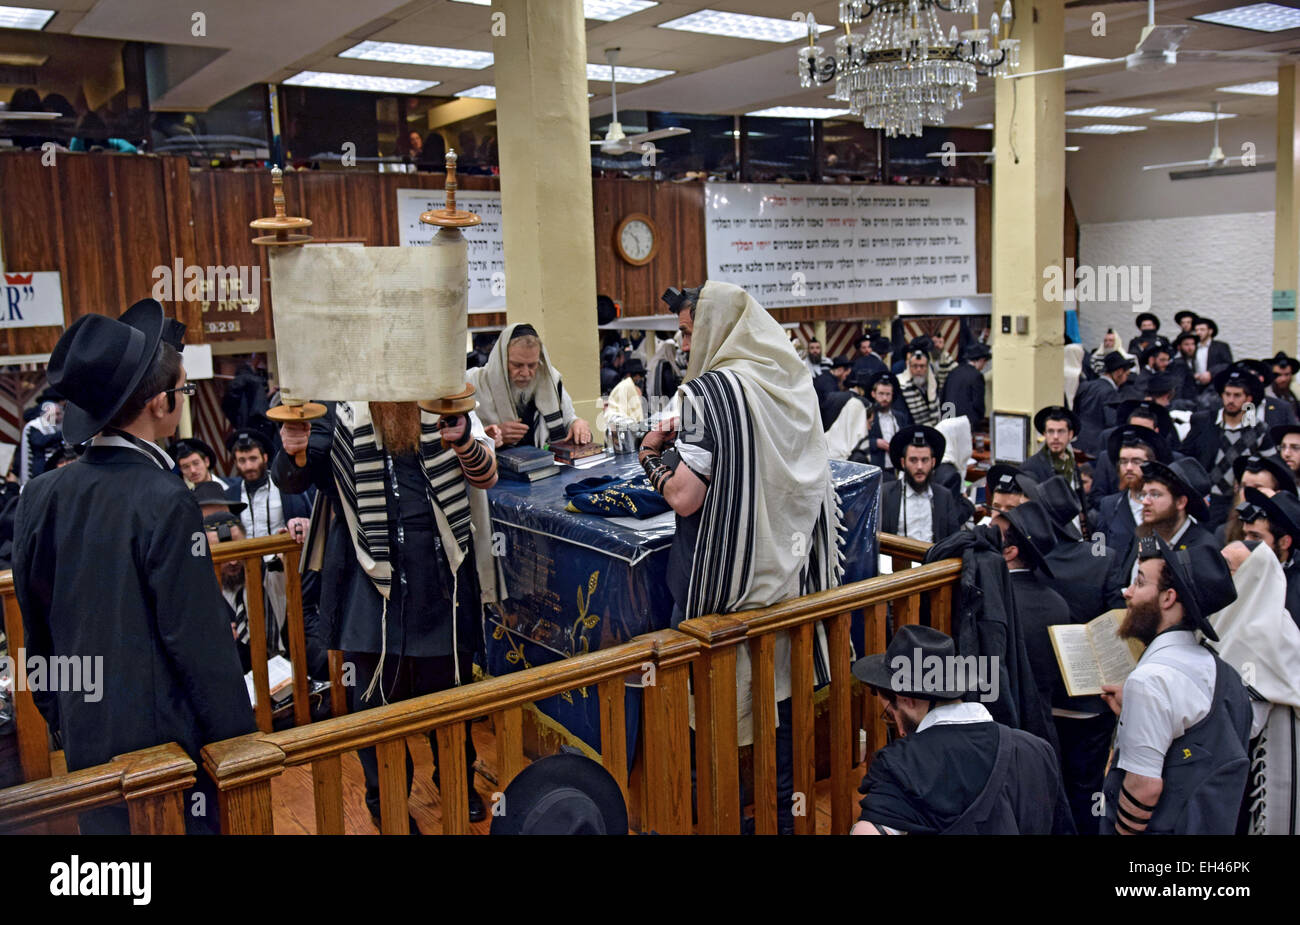 A Torah is lifted and shown to the congregation after a reading in a synagogue in Crown Heights, Brooklyn, New York - Stock Image